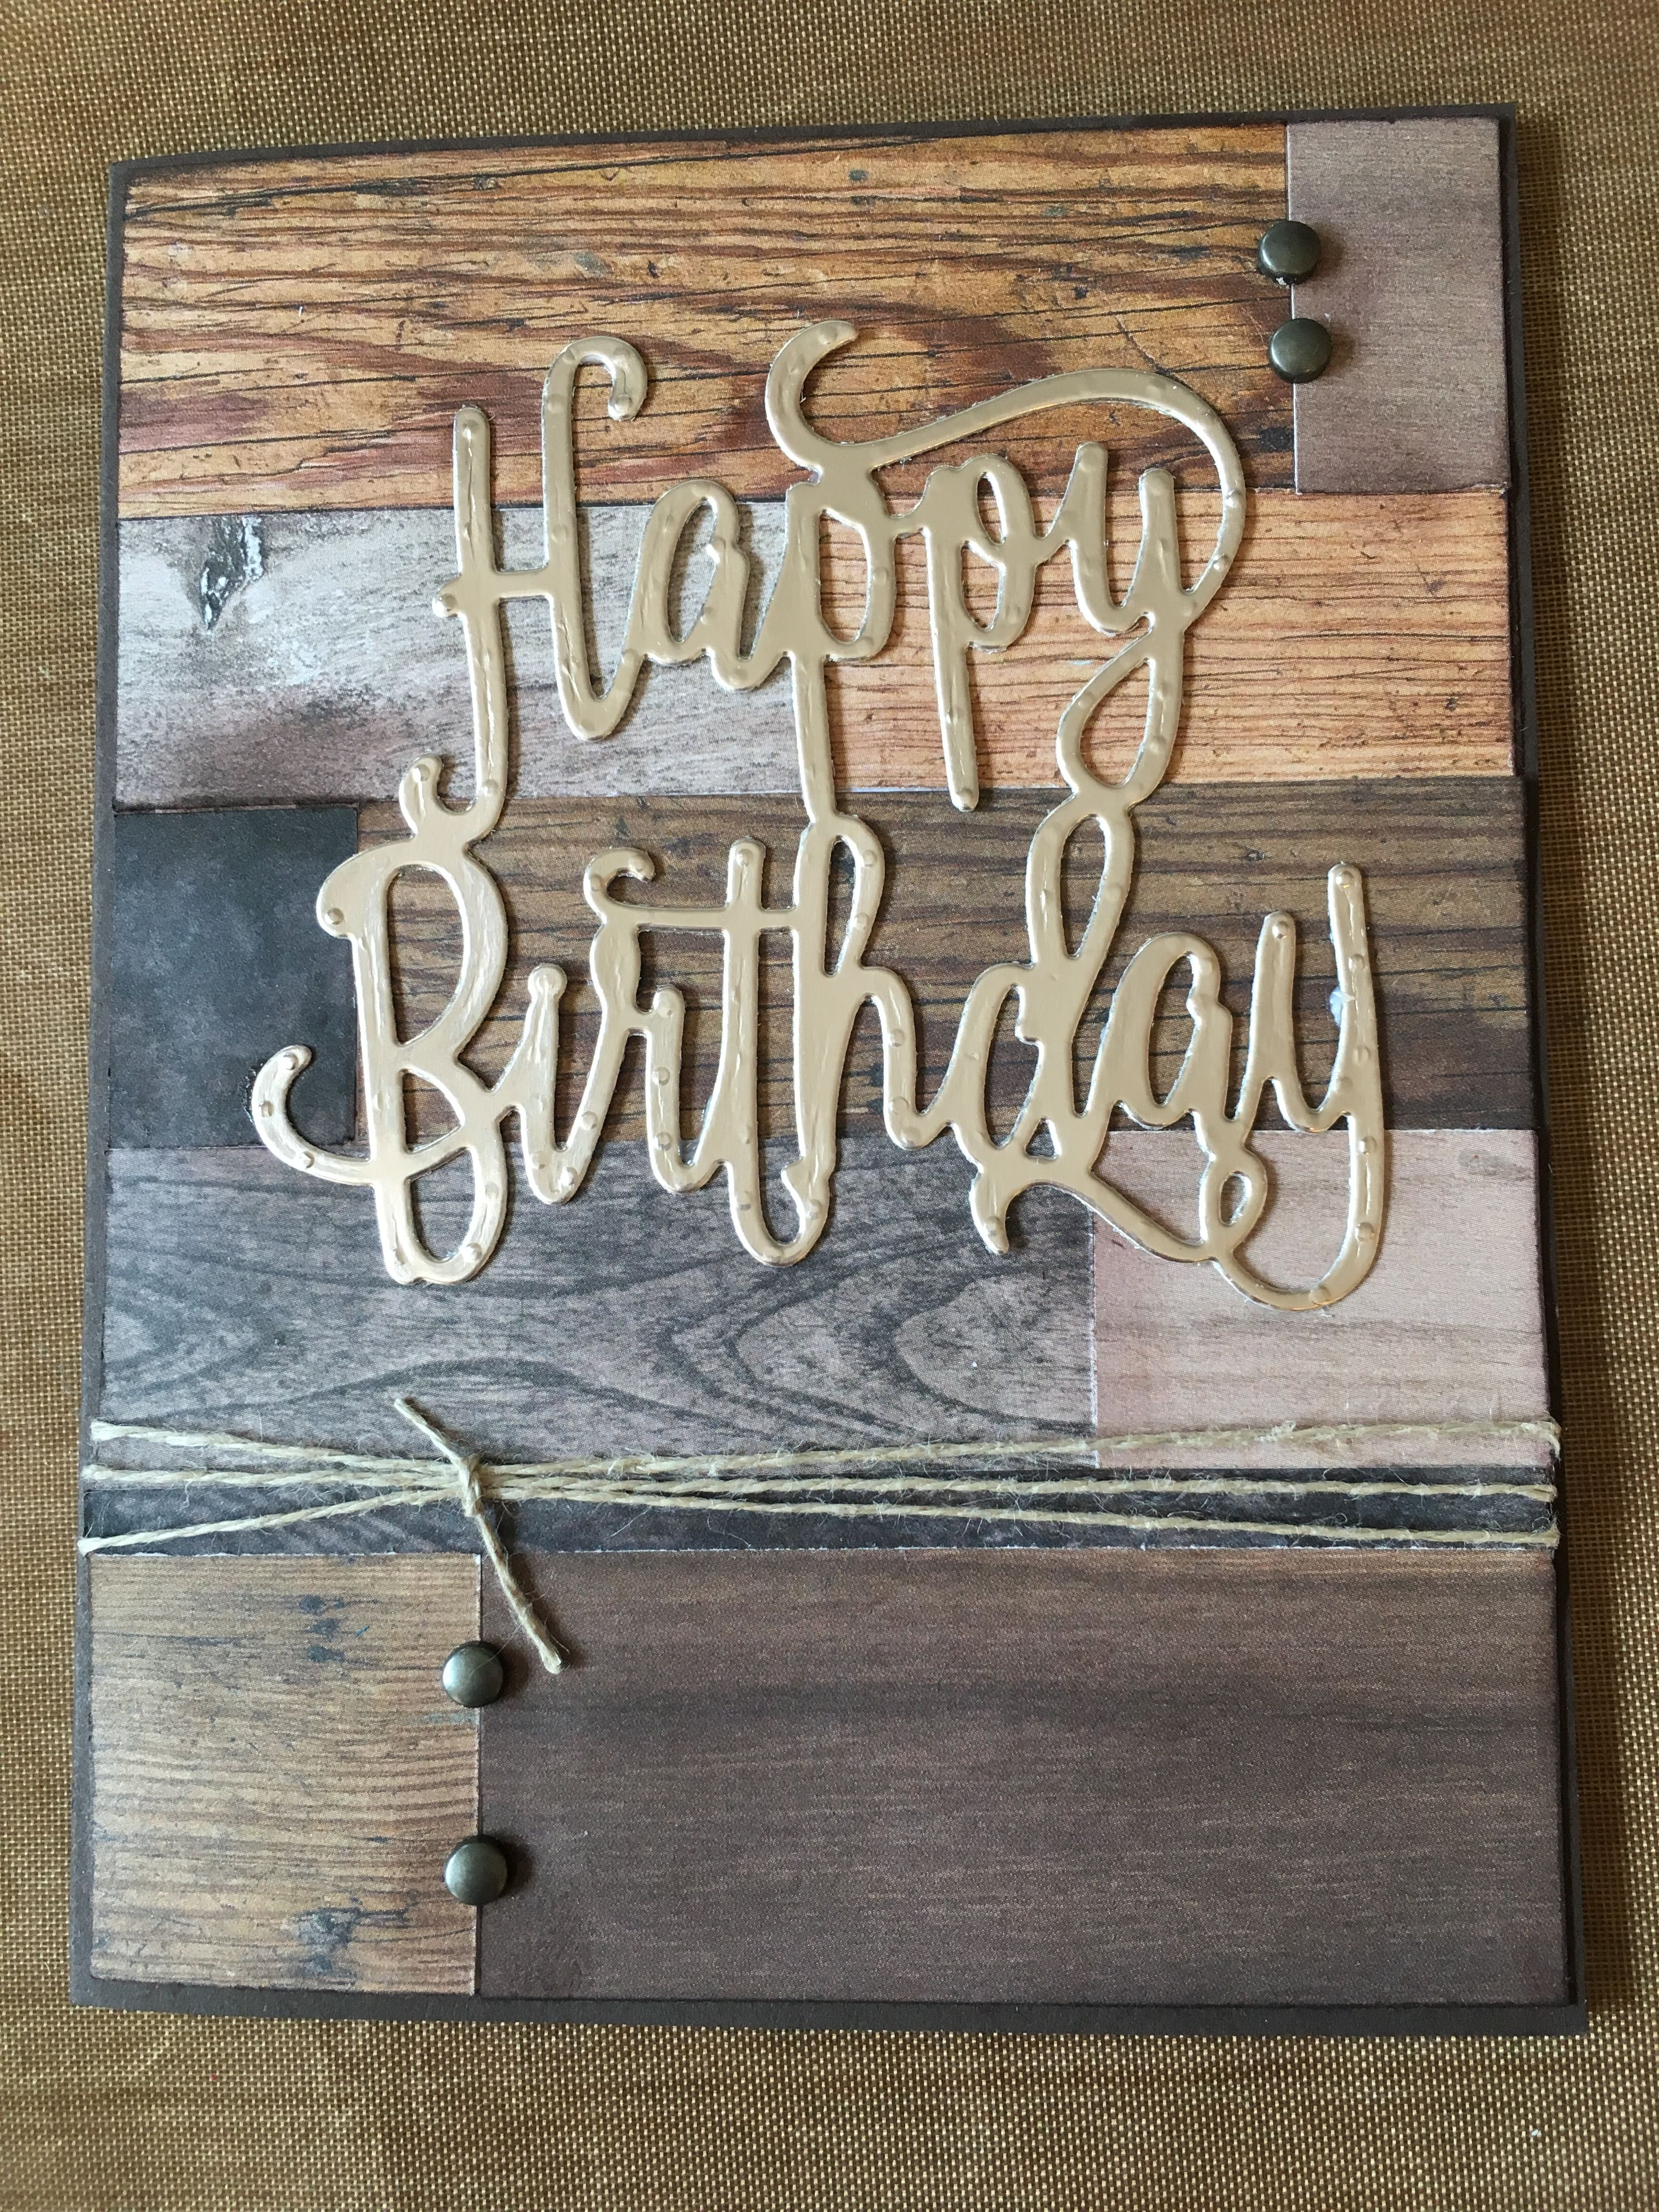 Su happy birthday thinlit and wood textures dsp stack for daves bday man card su happy birthday thinlit and wood textures dsp stack for daves bday bookmarktalkfo Image collections